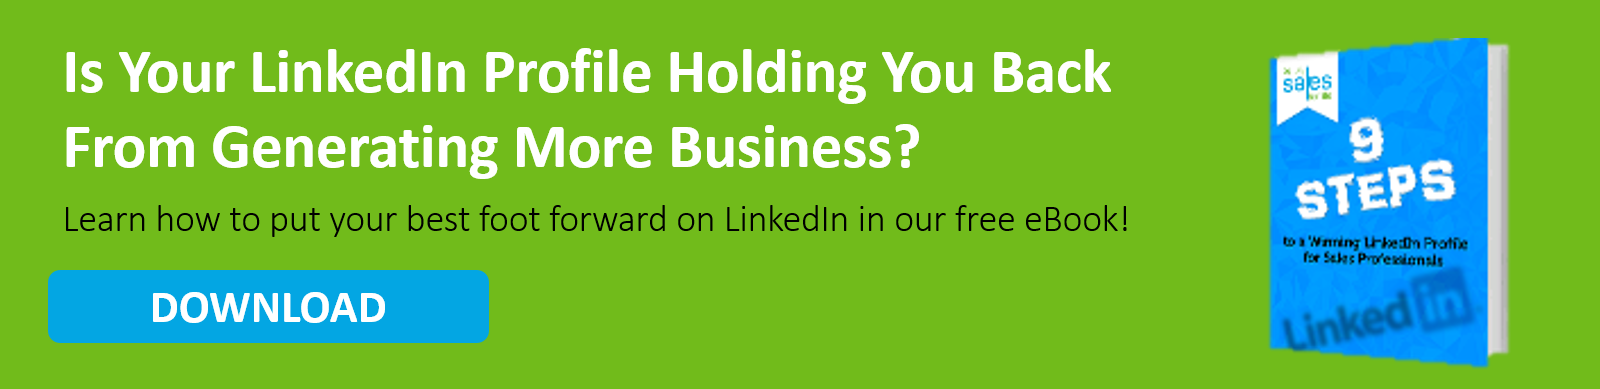 Is Your LinkedIn Profile Holding You Back